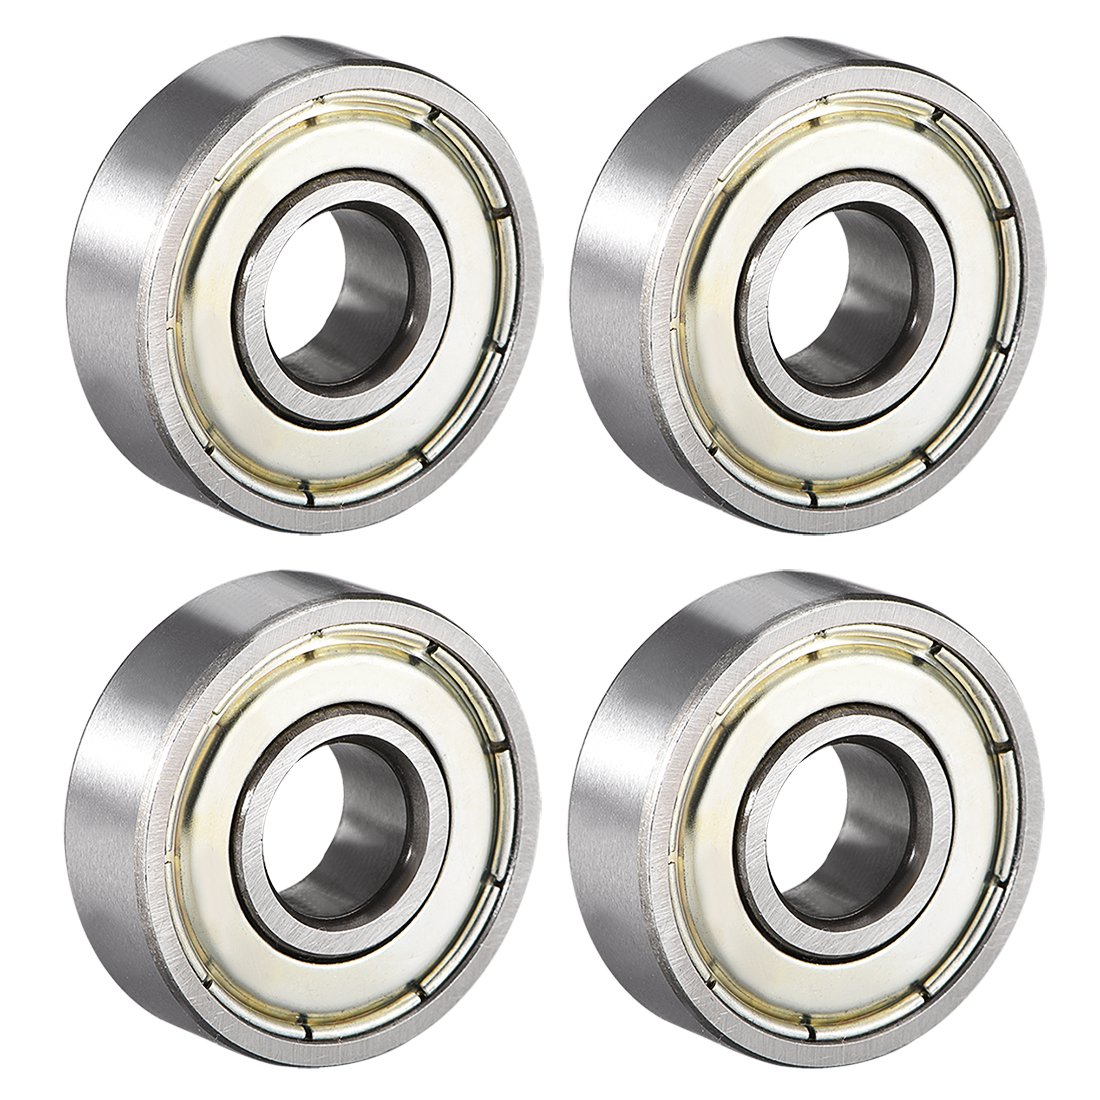 Pack of 20 uxcell 607ZZ Deep Groove Ball Bearing Double Shield 607-2Z 80017 7mm x 19mm x 6mm High Carbon Steel Z1 Bearings